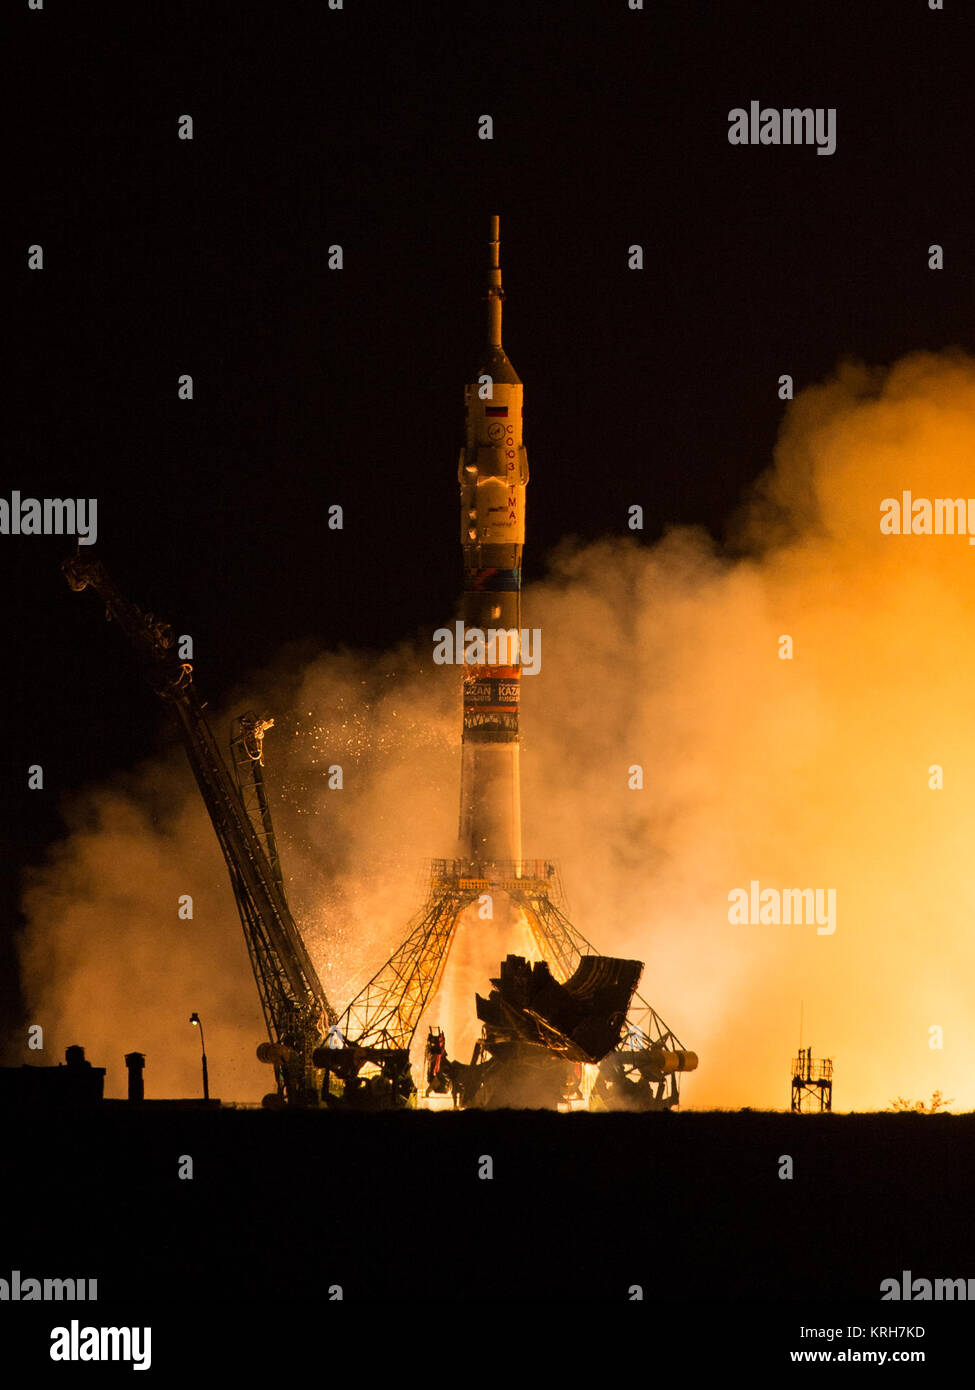 The Soyuz TMA-14M rocket launches from the Baikonur Cosmodrome in Kazakhstan on Friday, Sept. 26, 2014 carrying - Stock Image